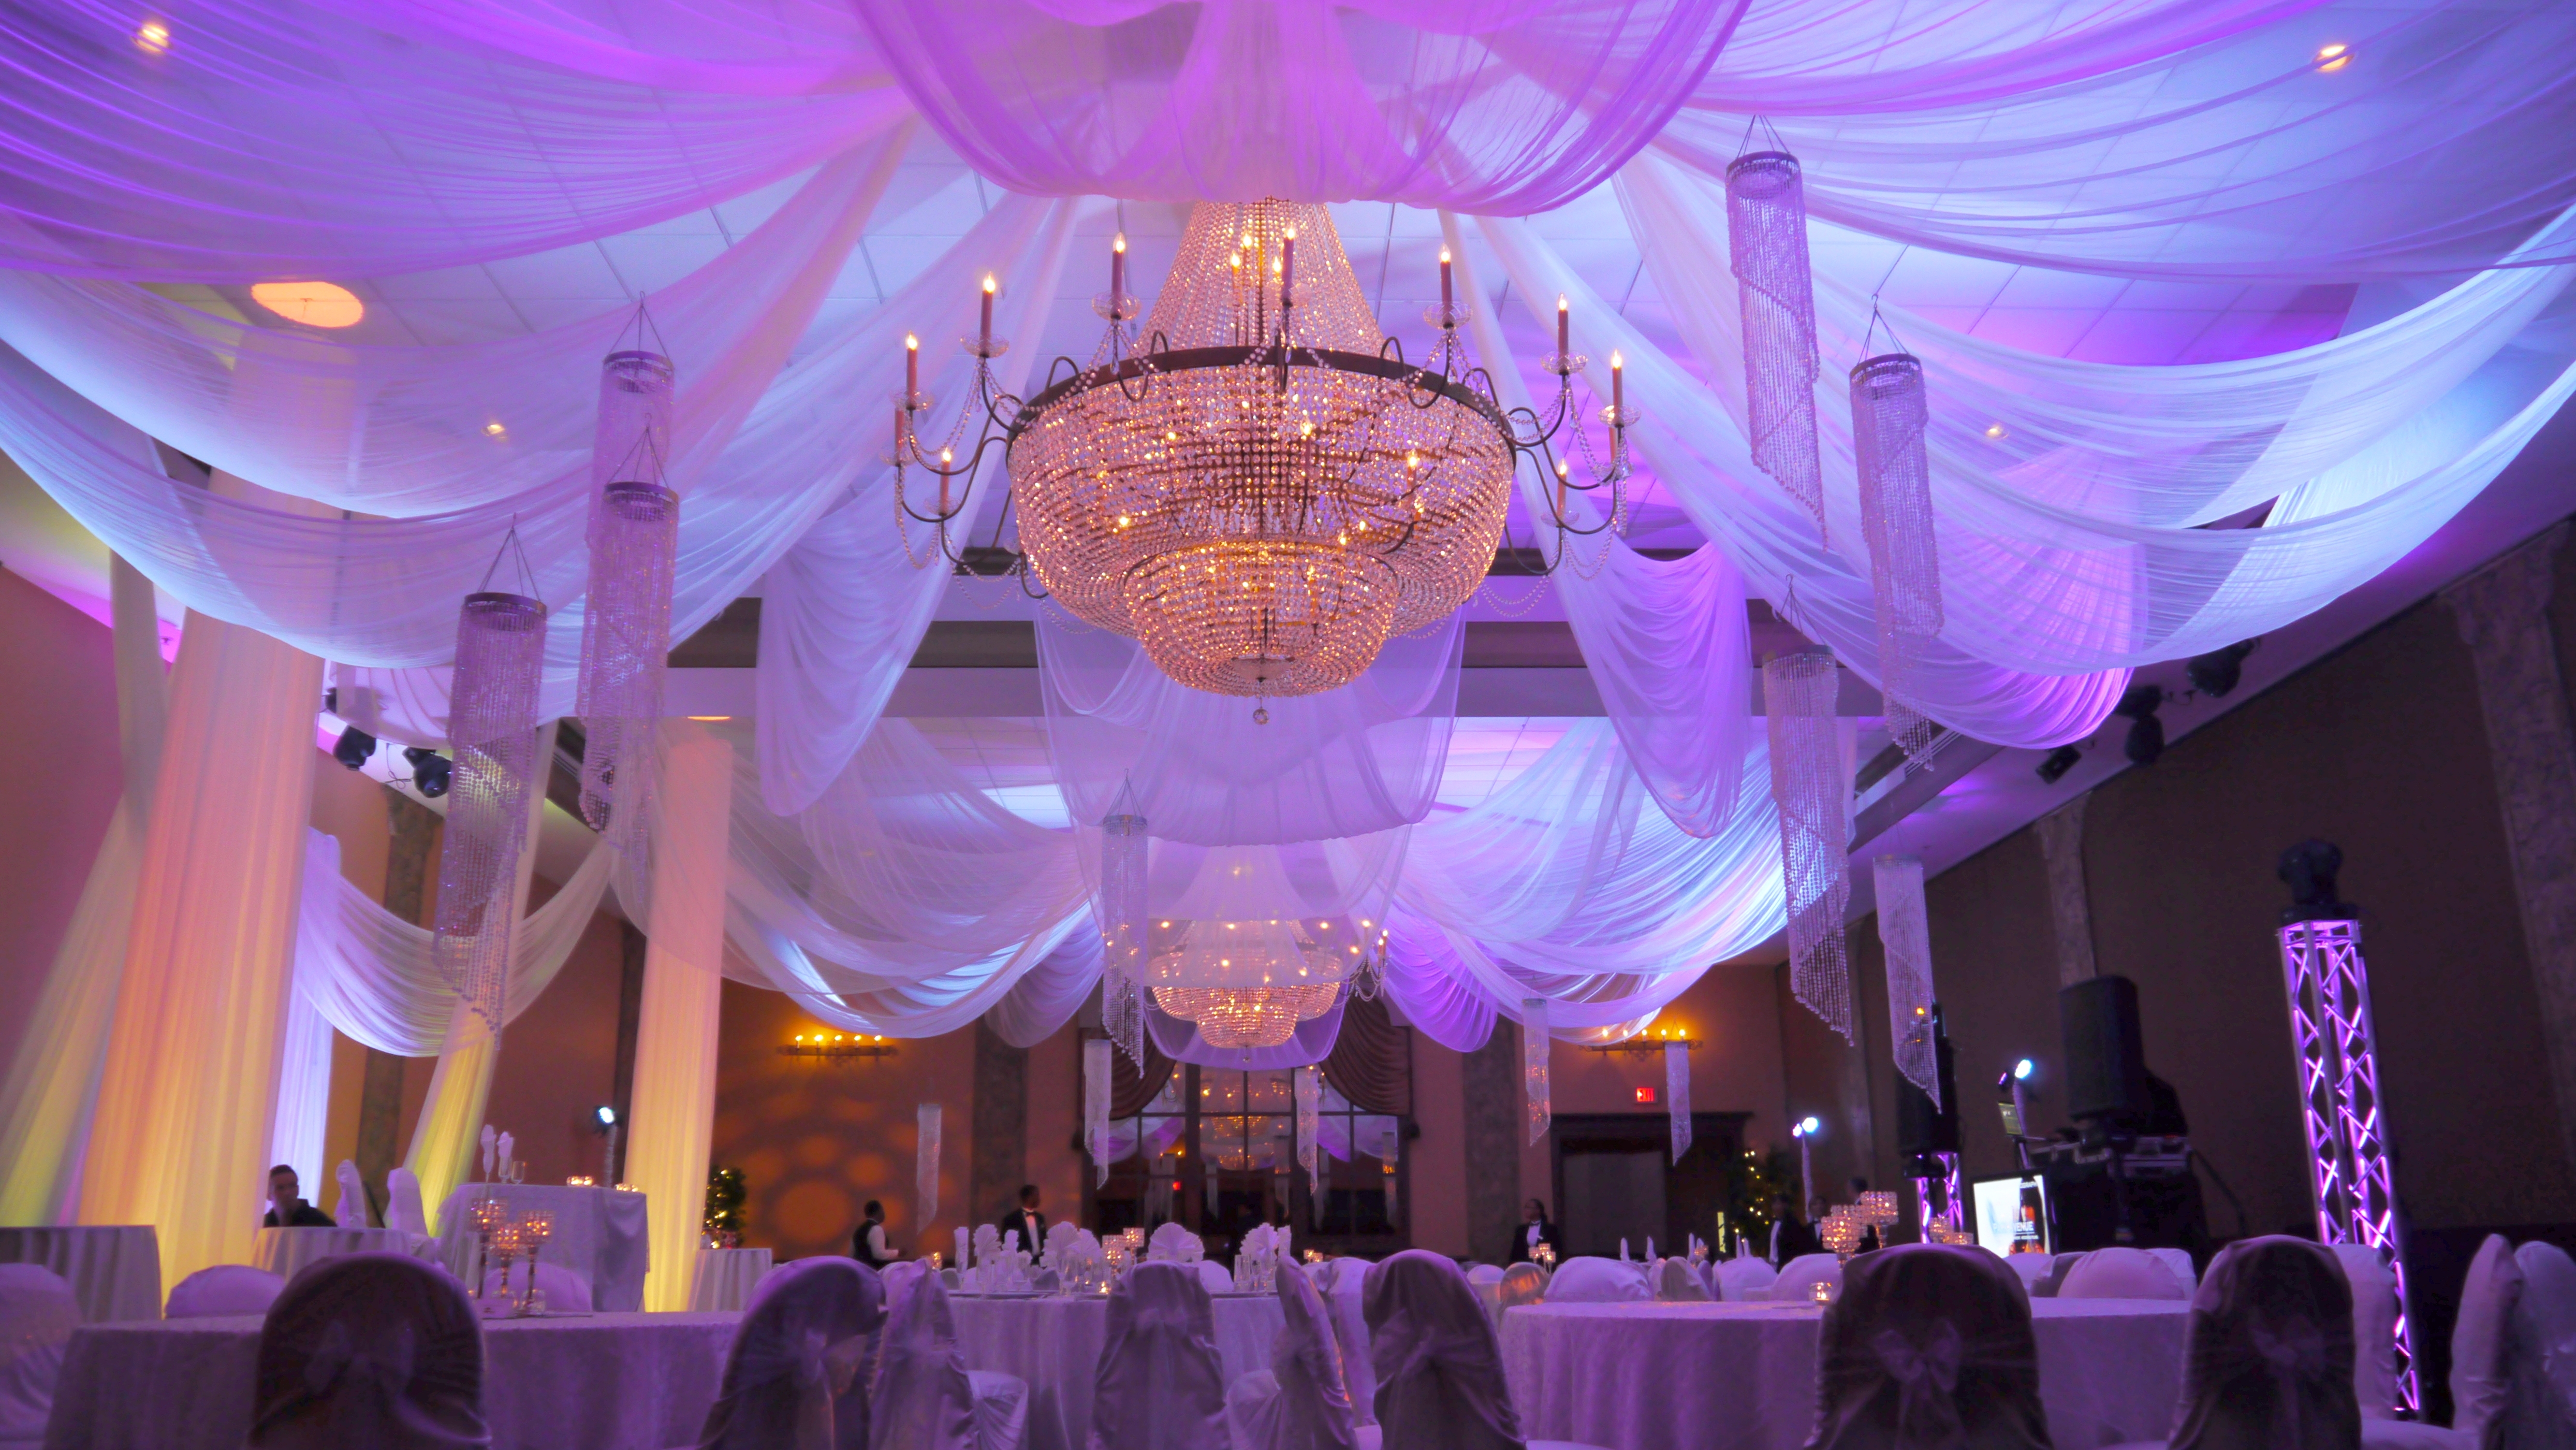 hang fairytale how watch youtube new for baby decorations drapes york ceiling events to shower